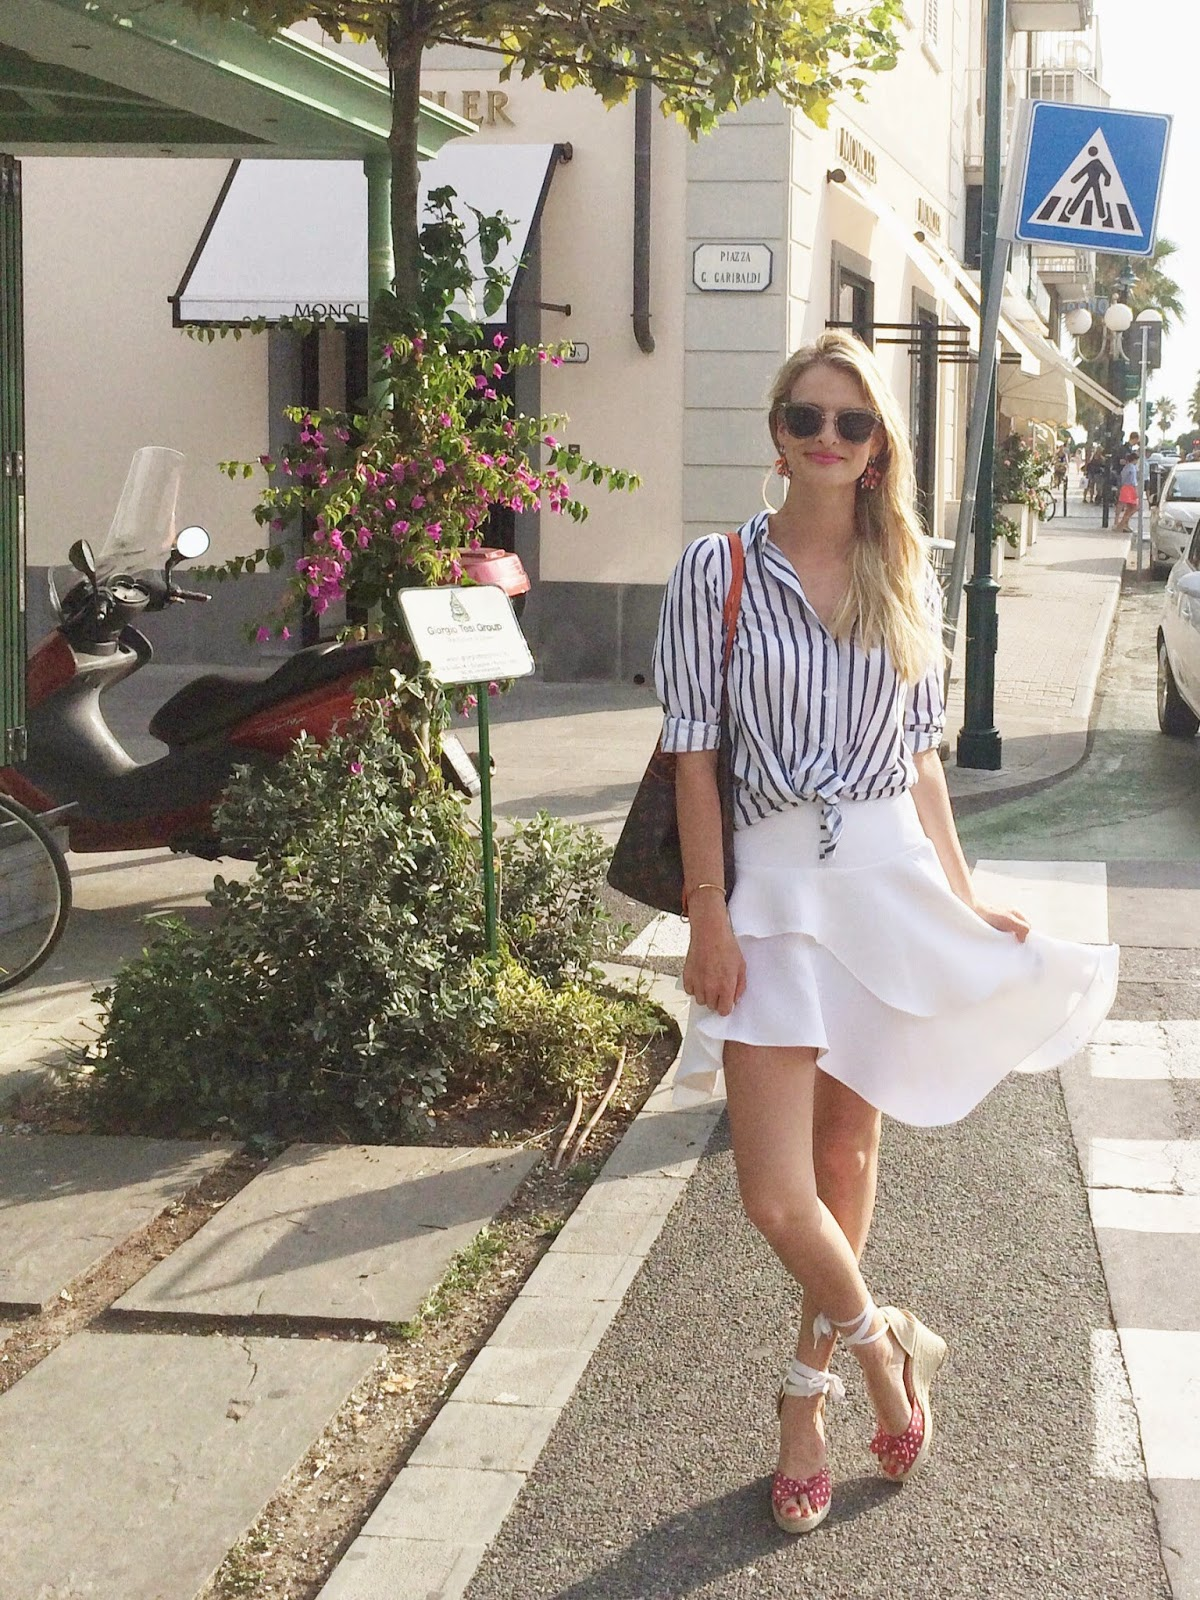 hm trend, h&m trend, h&m trend skirt, wedge heels, italy, italian street style, fashion blogger, striped shirt